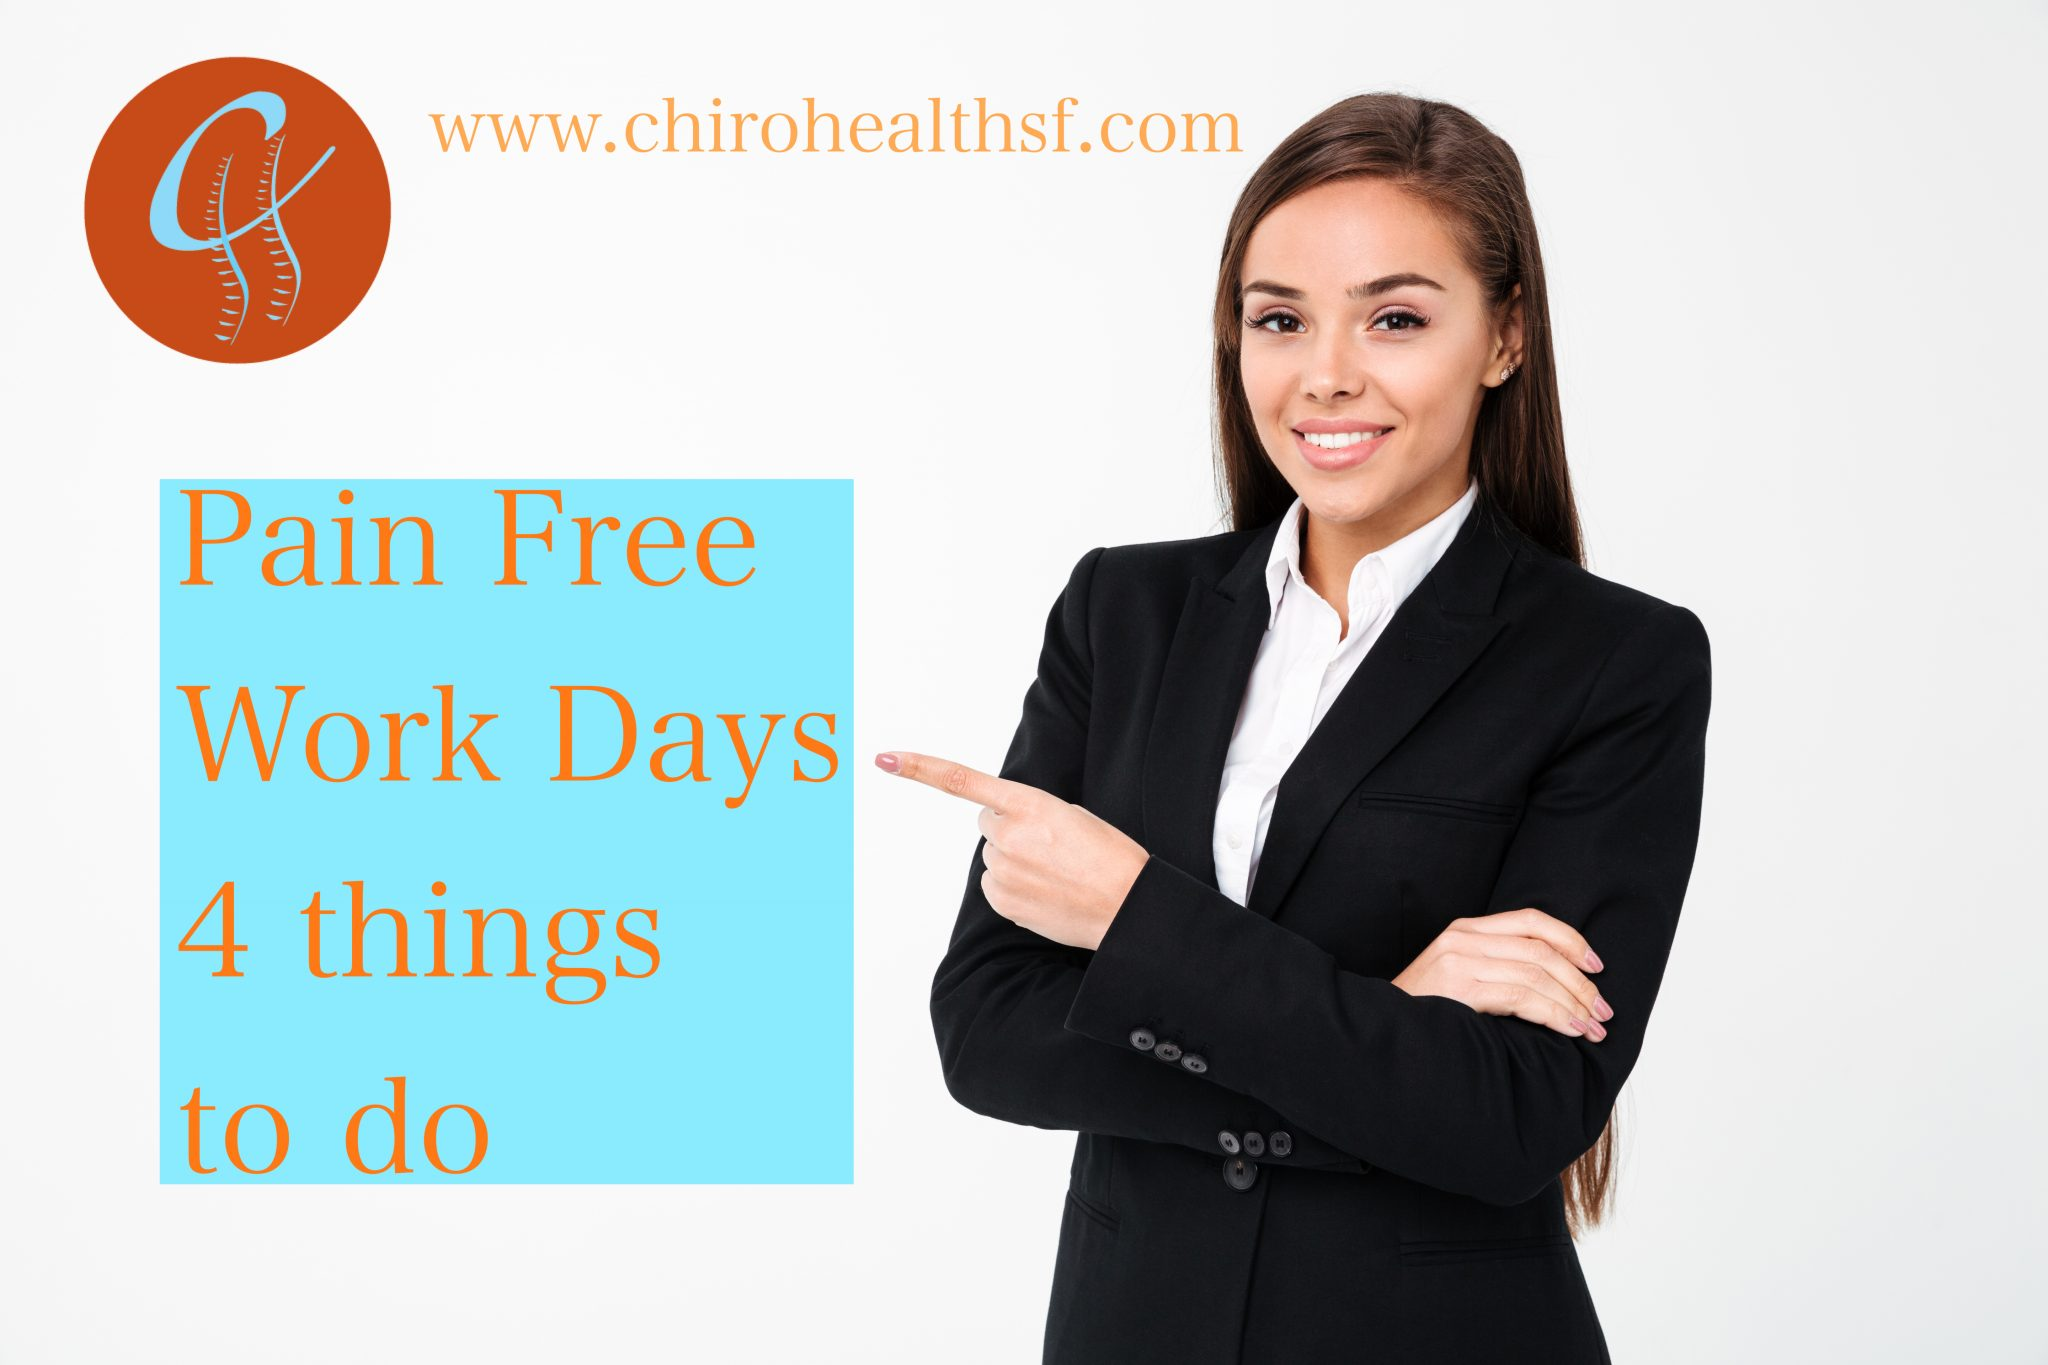 Pain-Free Workdays- 4 things to do!